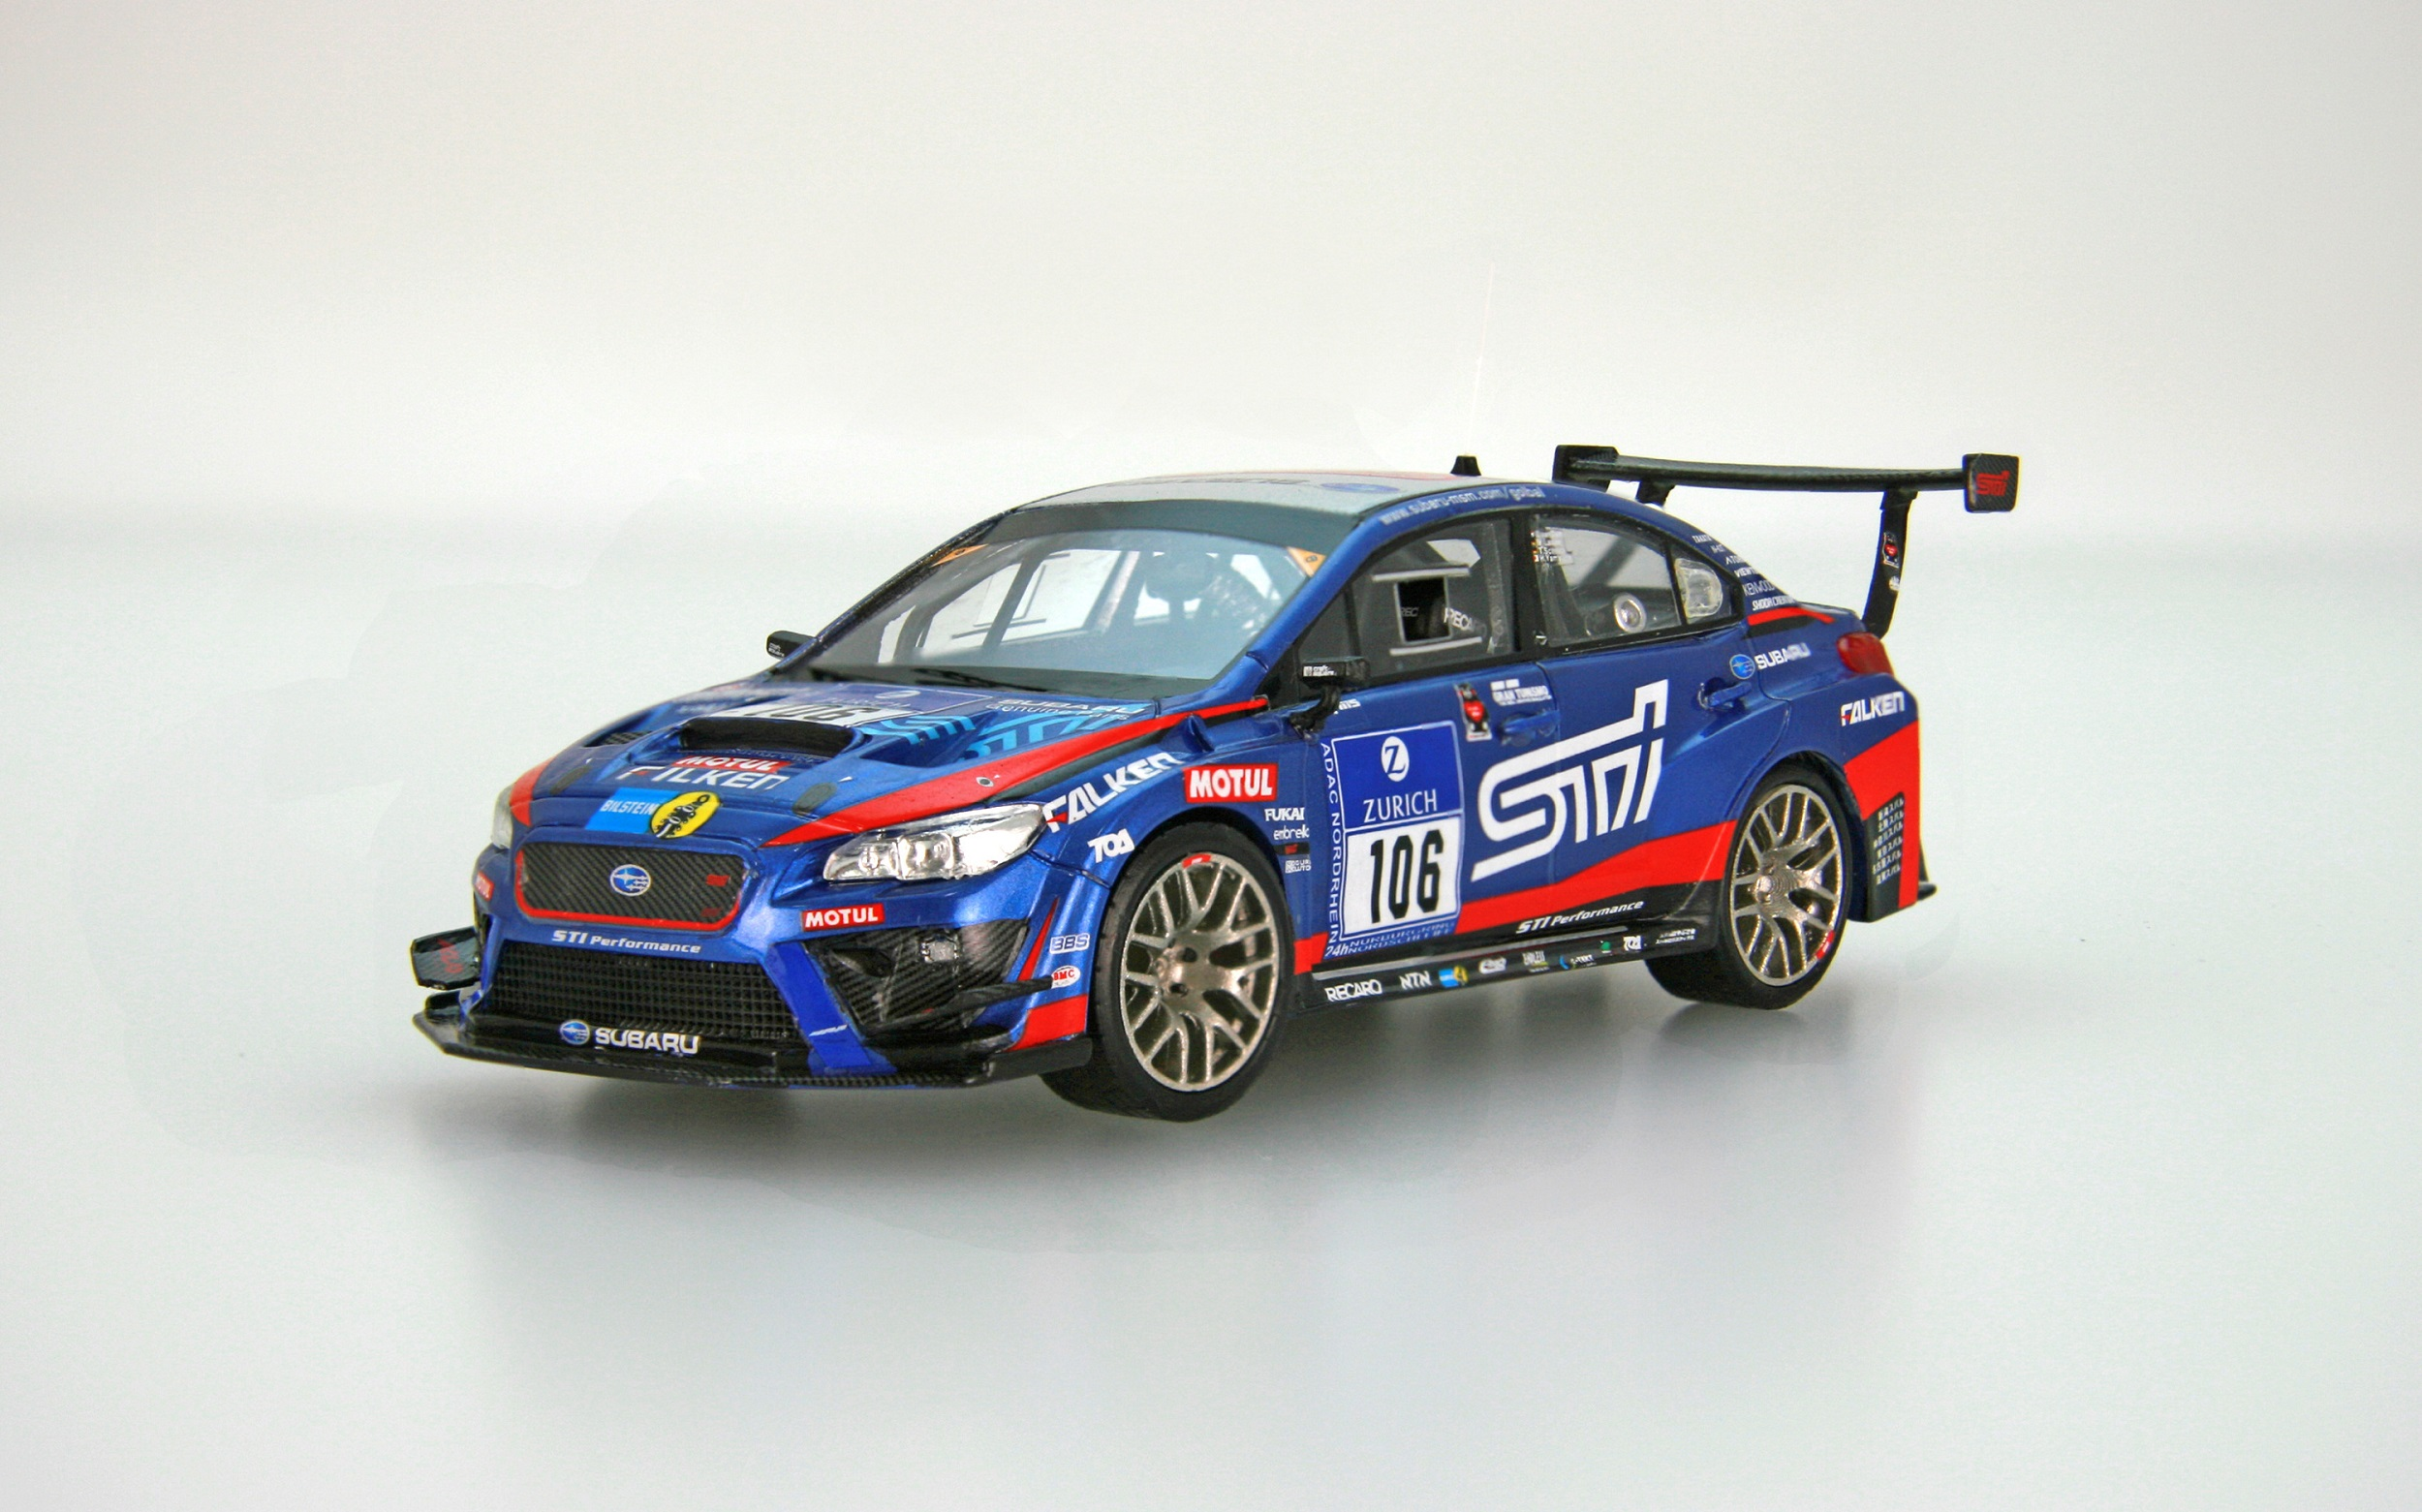 ☆予約品☆【45451】SUBARU WRX STI Nurburgring 24-hour Race 2016 No.106 [RESIN]